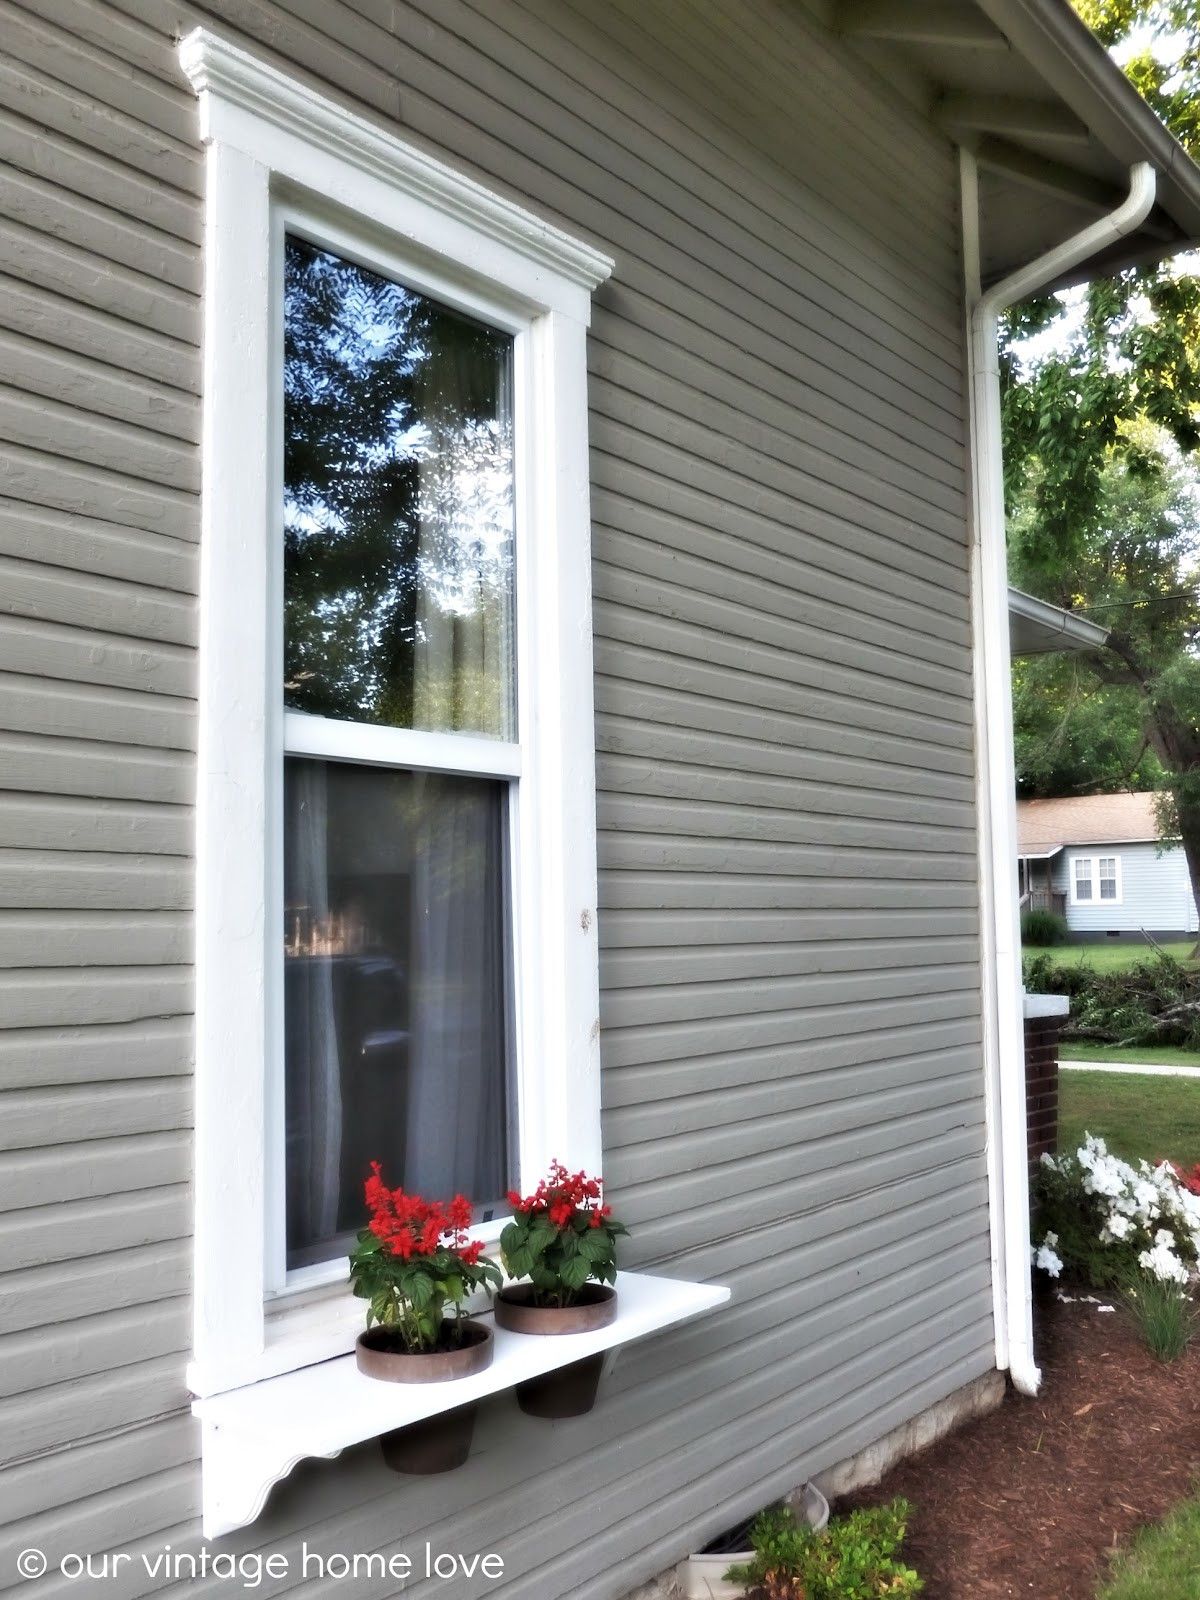 Best ideas about Window Boxes DIY . Save or Pin our vintage home love DIY Window Boxes Now.